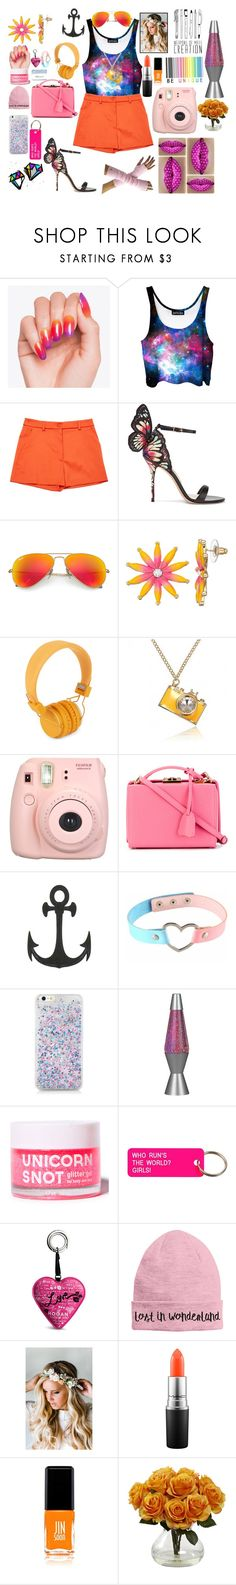 """""""orange just orange"""" by sun-100 ❤ liked on Polyvore featuring Moschino, Sophia Webster, Ray-Ban, Urbanears, Fujifilm, Mark Cross, Lava, Various Projects, Hogan and Emily Rose Flower Crowns"""